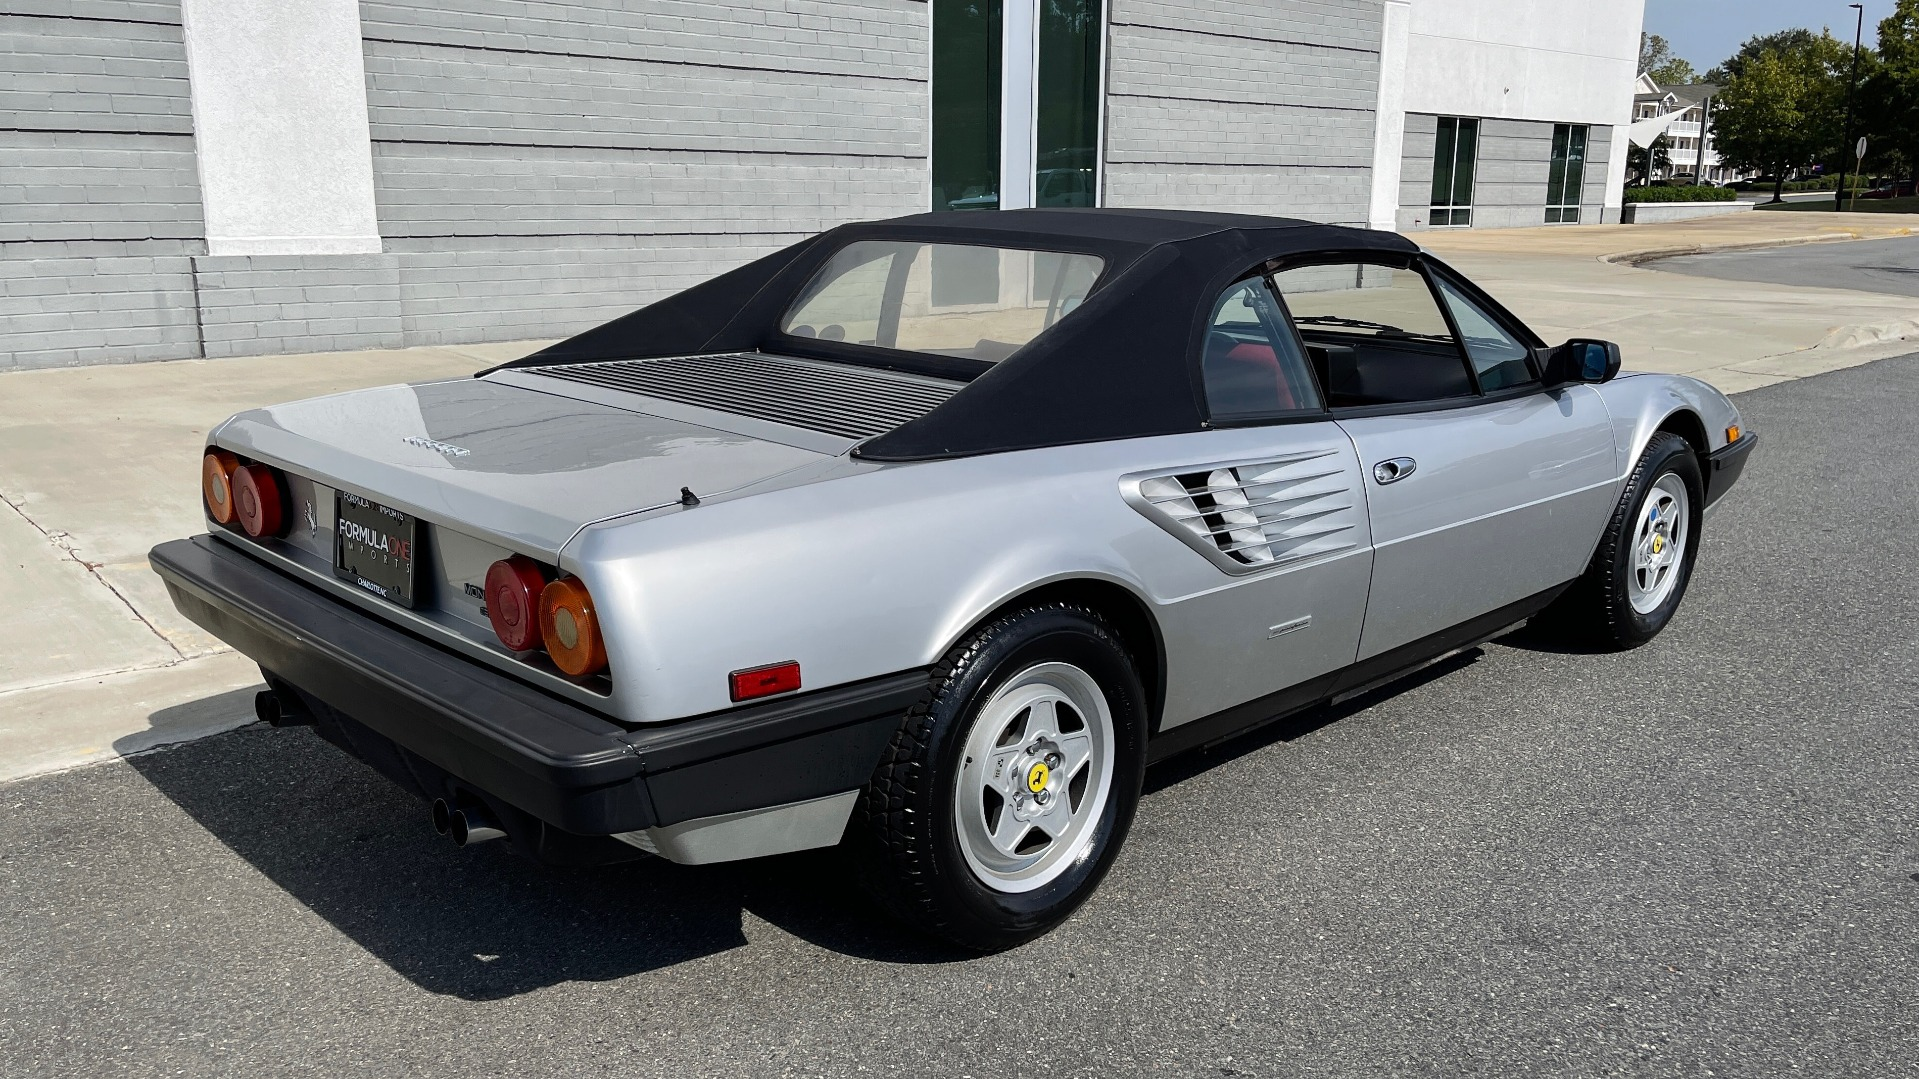 Used 1984 Ferrari MONDIAL 2+2 CABRIOLET / MID-ENGINE 3.0L V8 240HP / 5-SPEED MANUAL / LOW MILES for sale Call for price at Formula Imports in Charlotte NC 28227 2